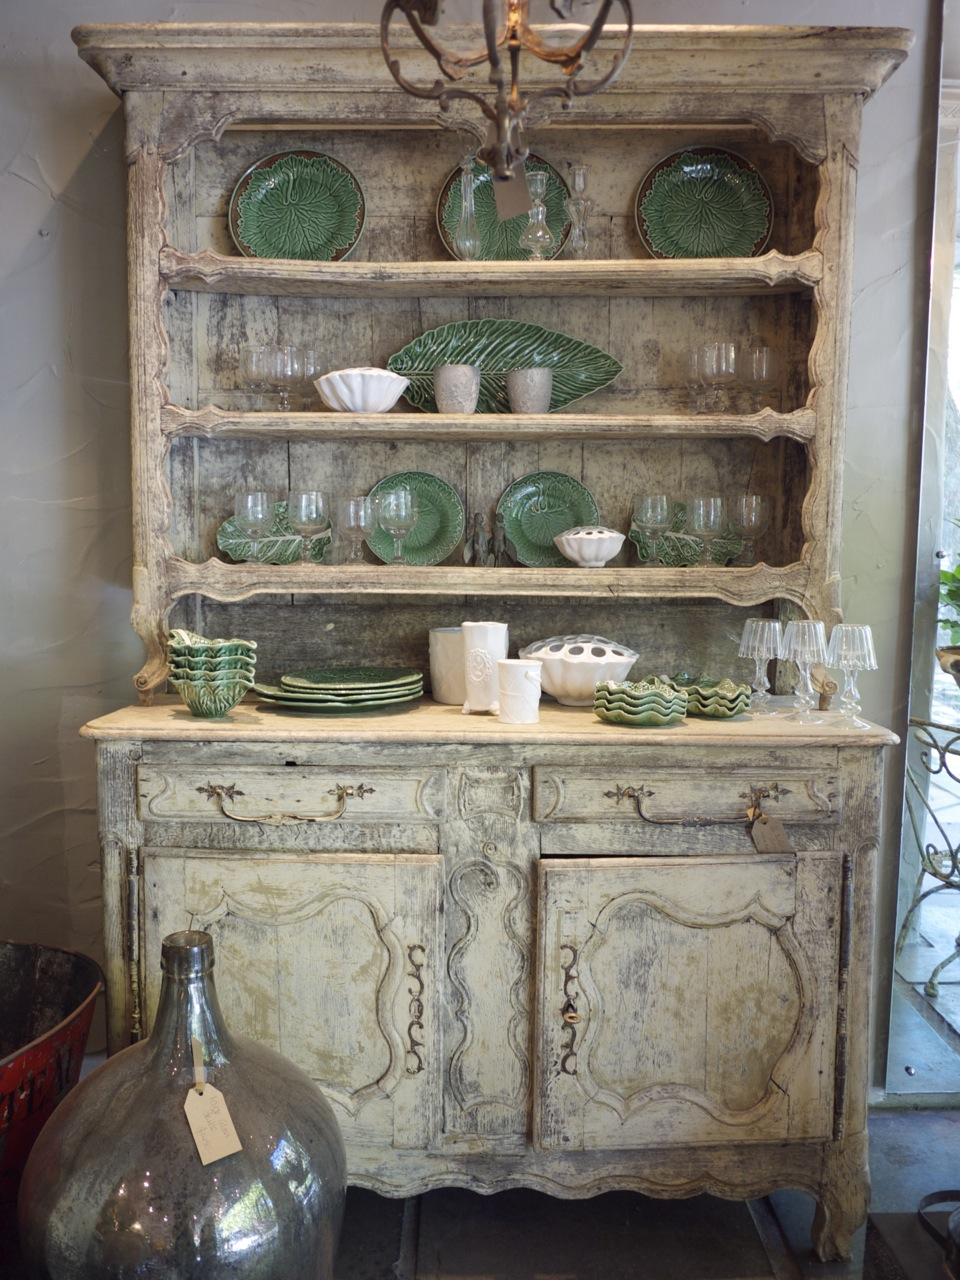 Parterre in Woollahra - Weathered Hutch with Green Crockery